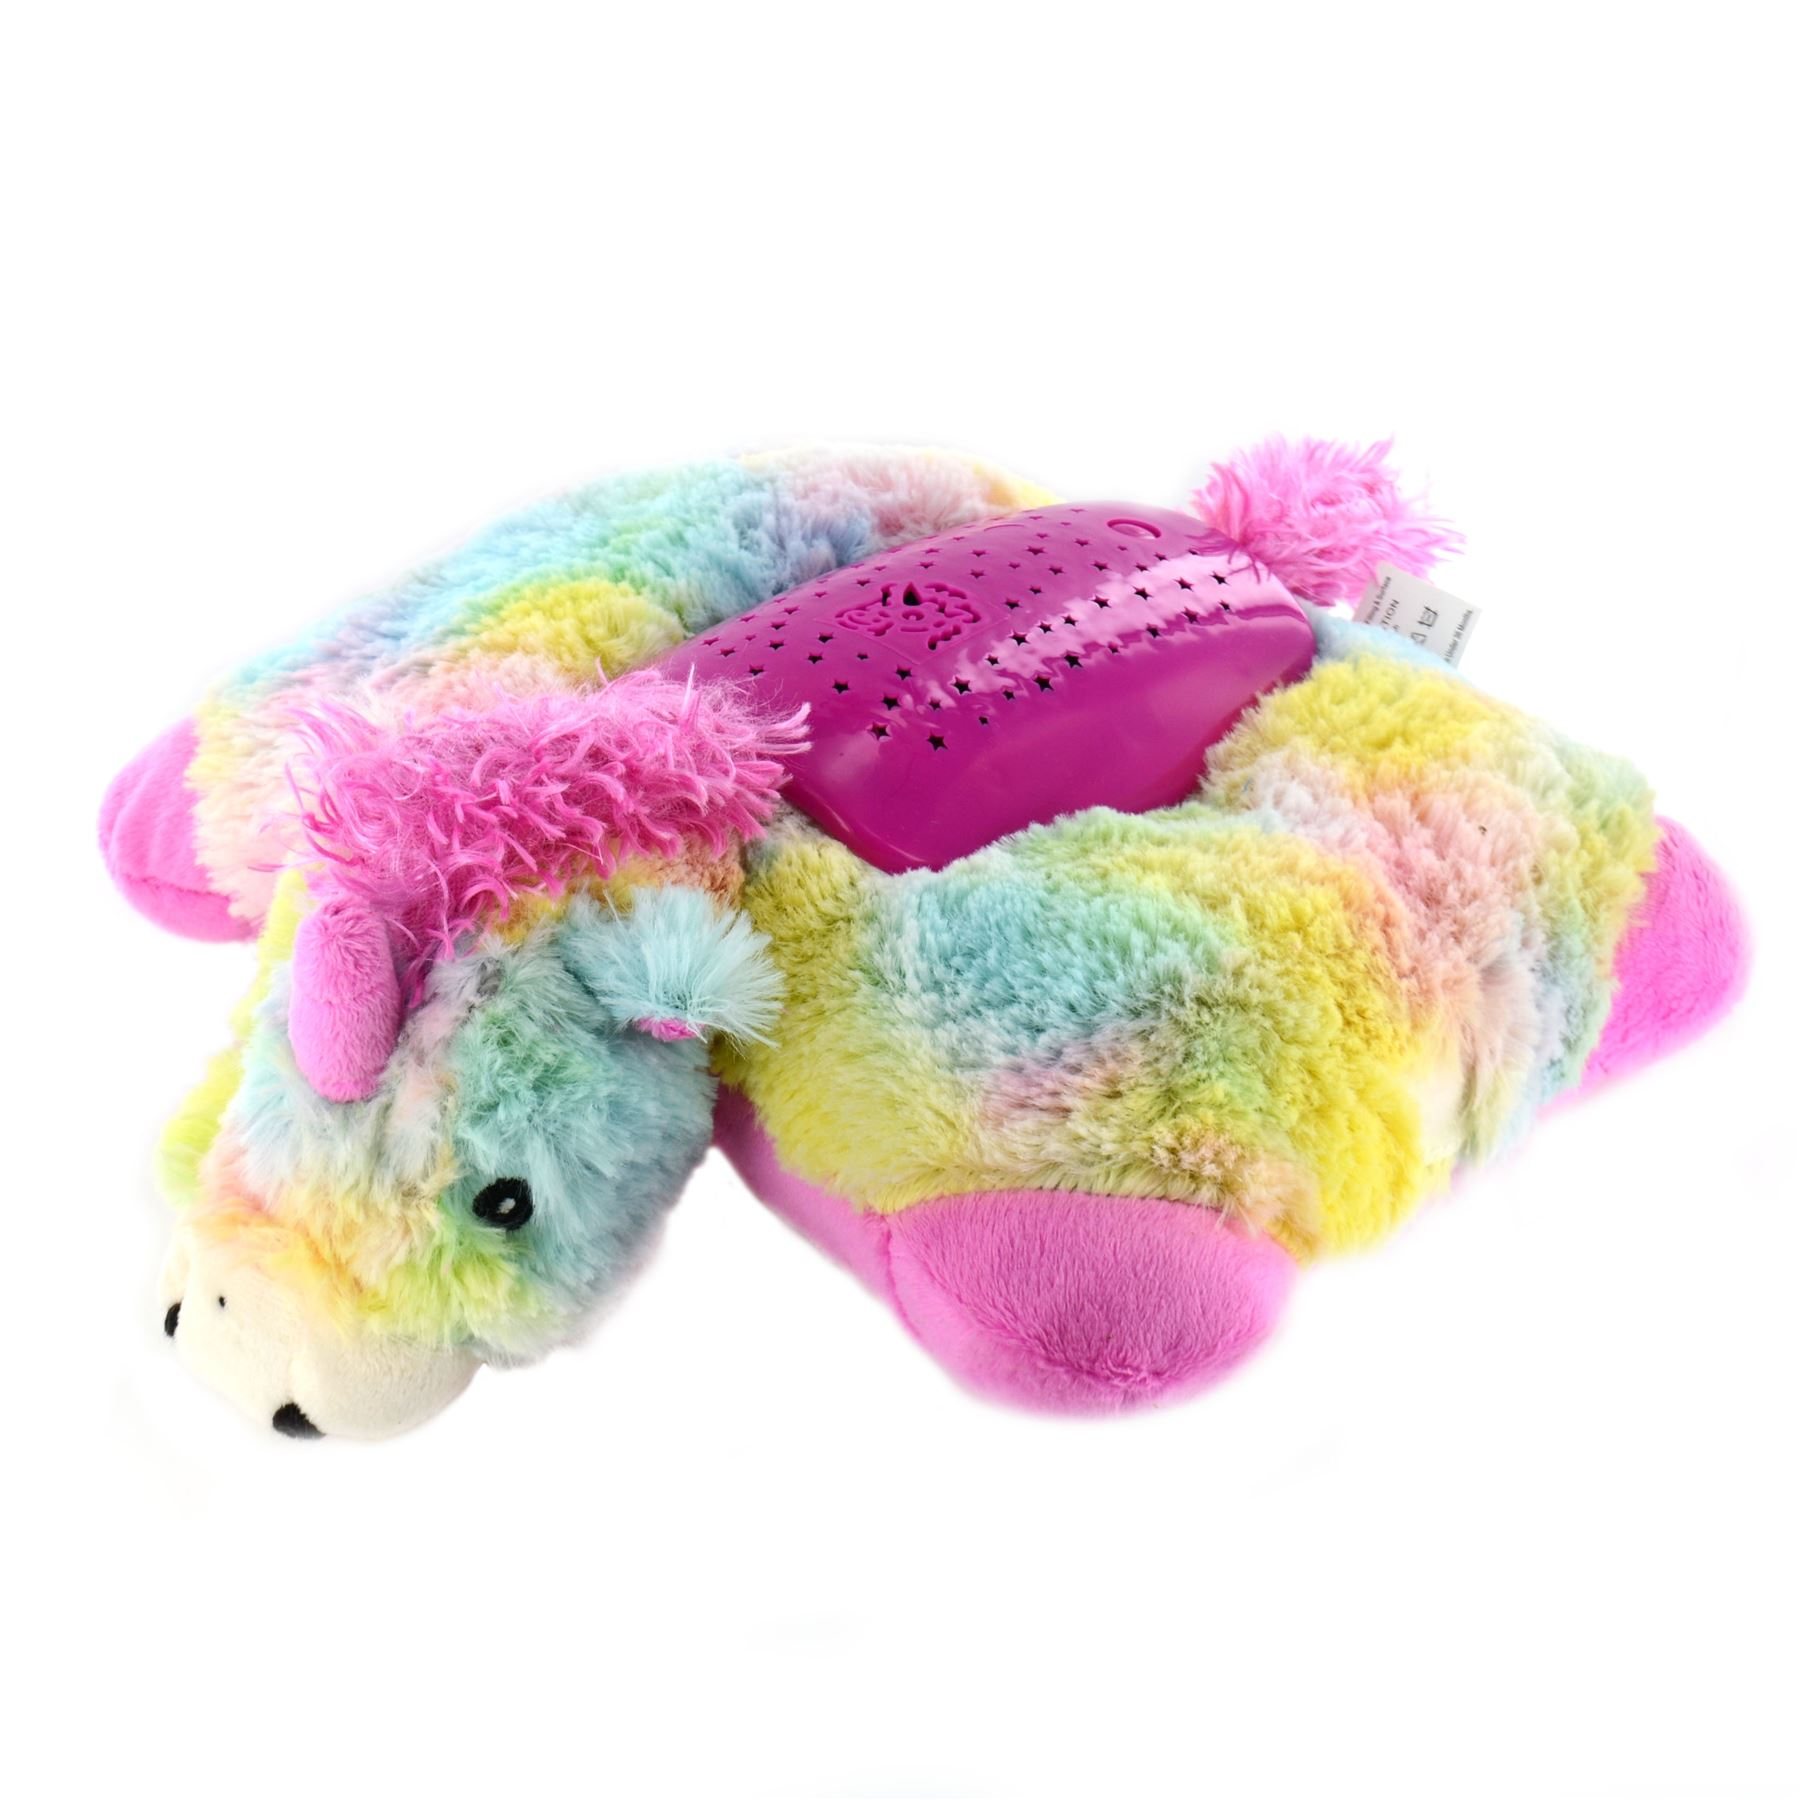 Pillow Pets Night Lights Kids Cuddly Animal Cushion Toy Bedroom Star Projector eBay